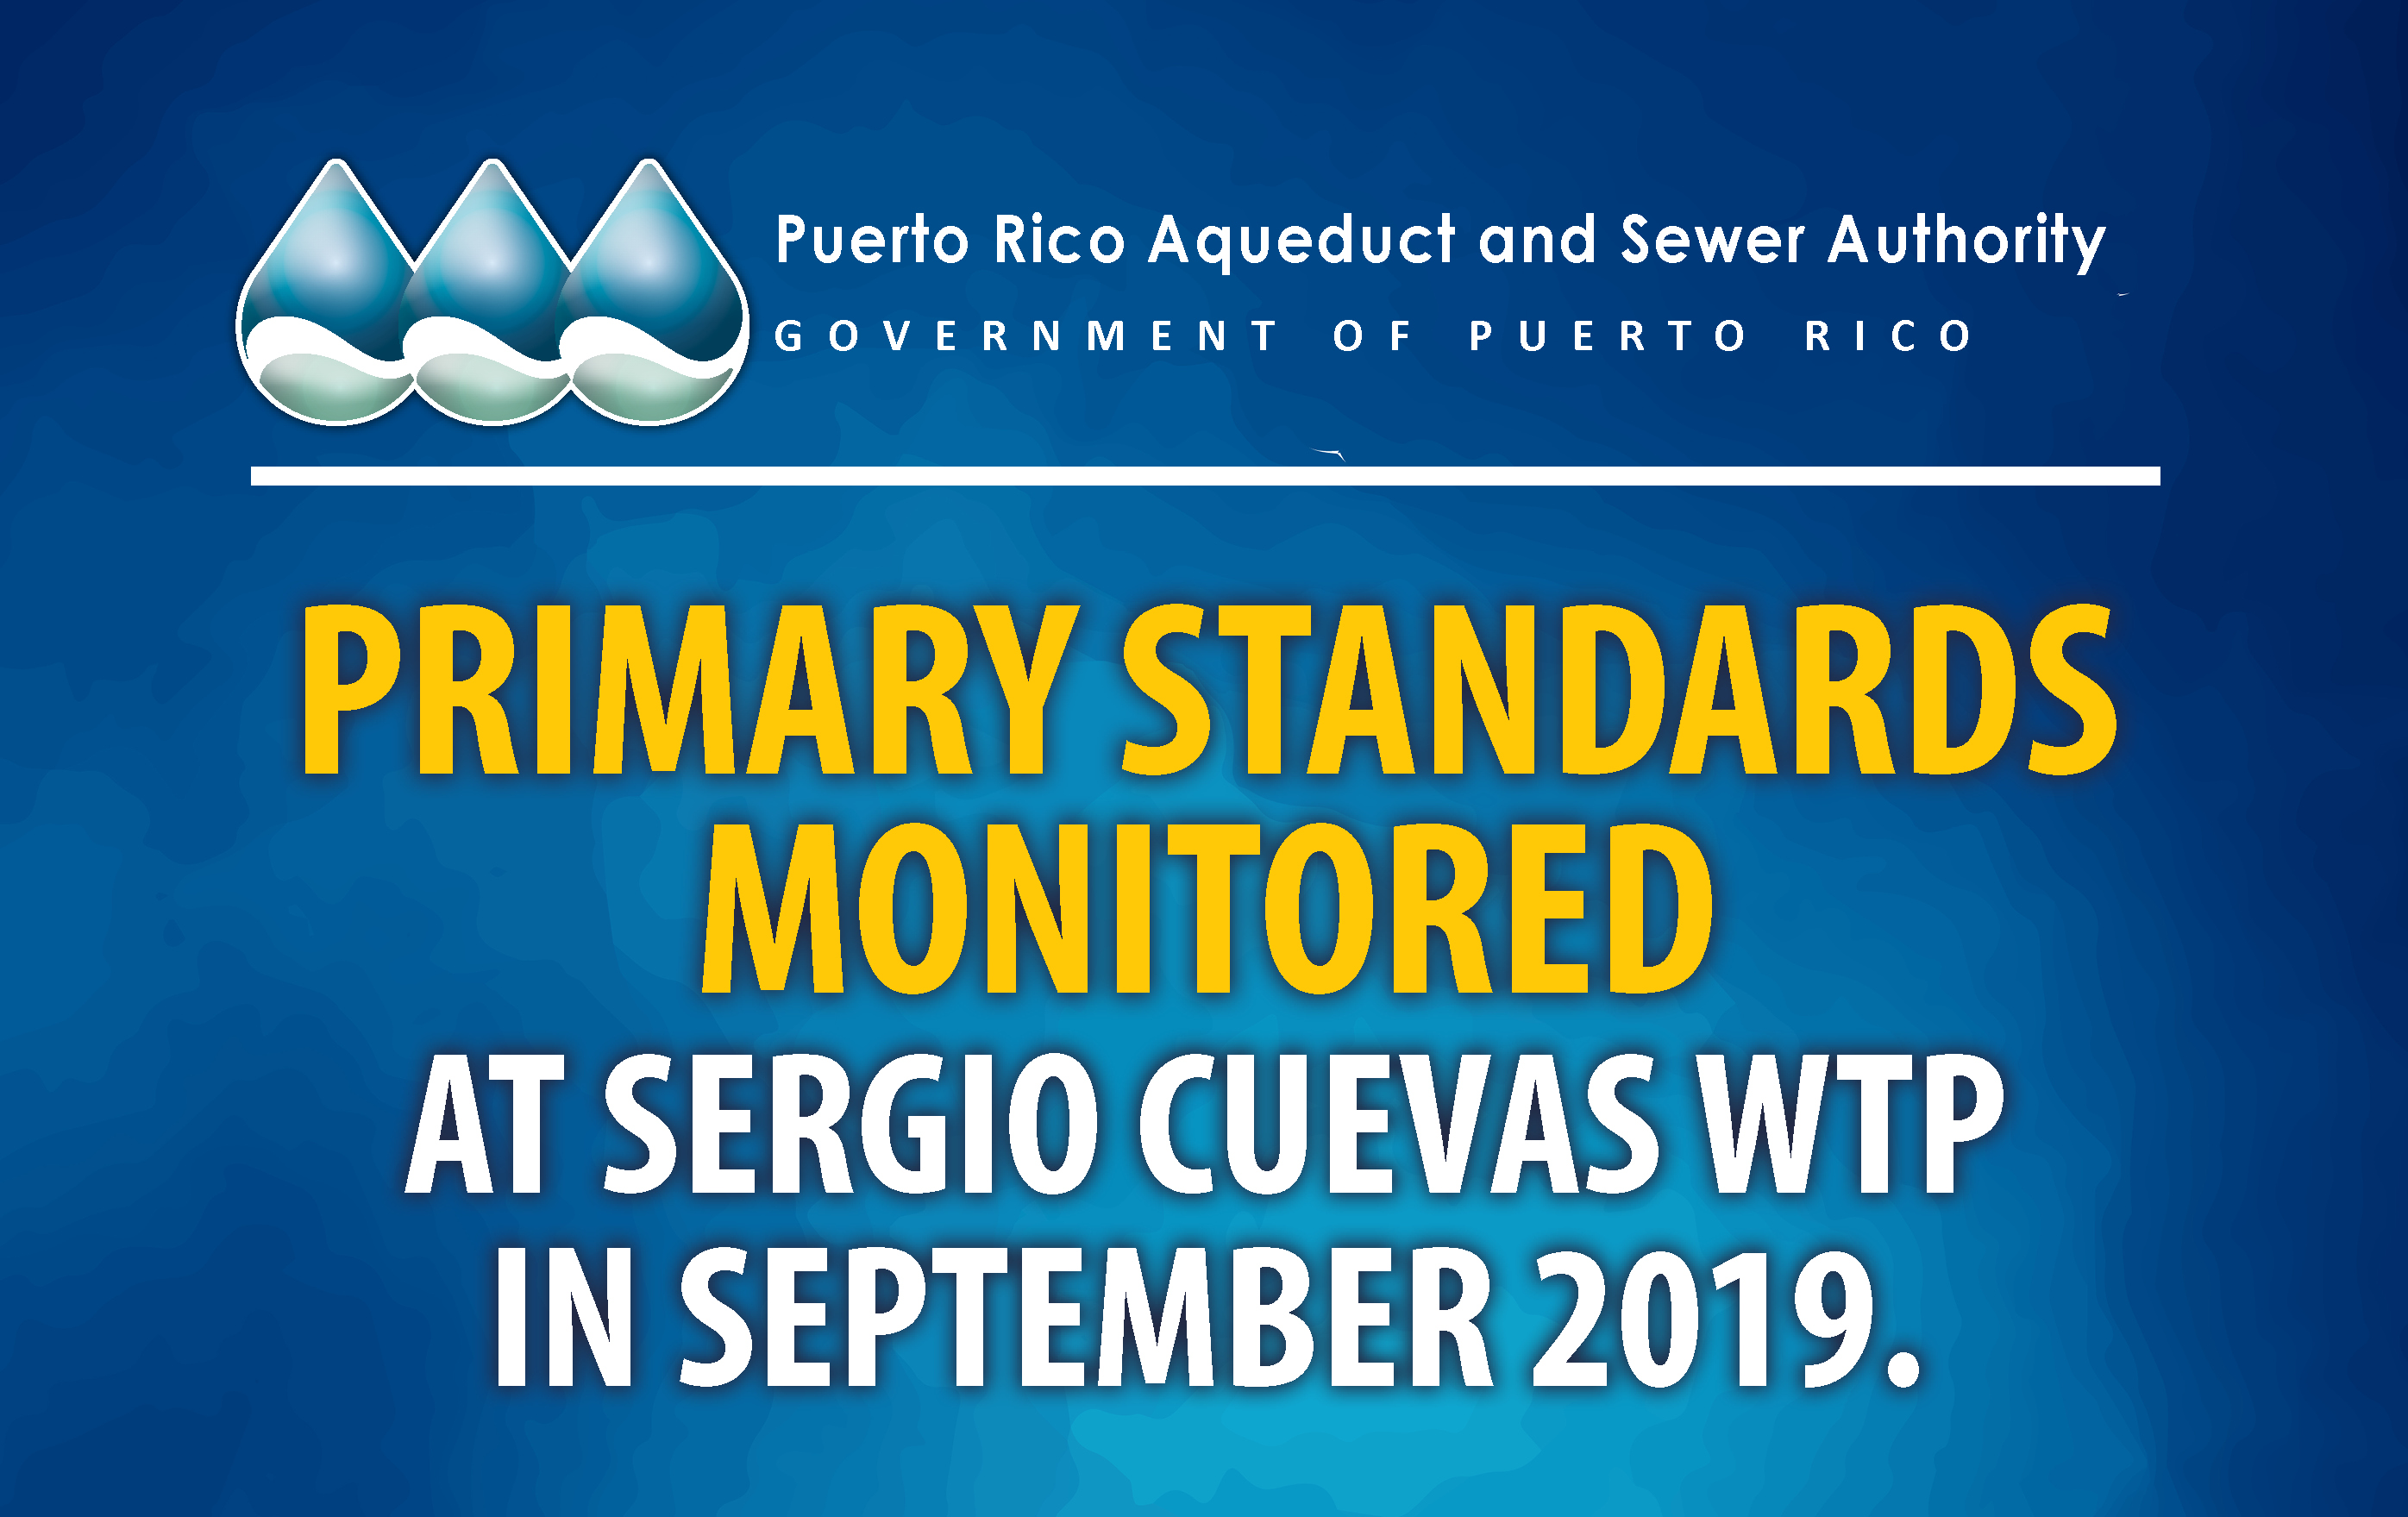 Primary standards monitored